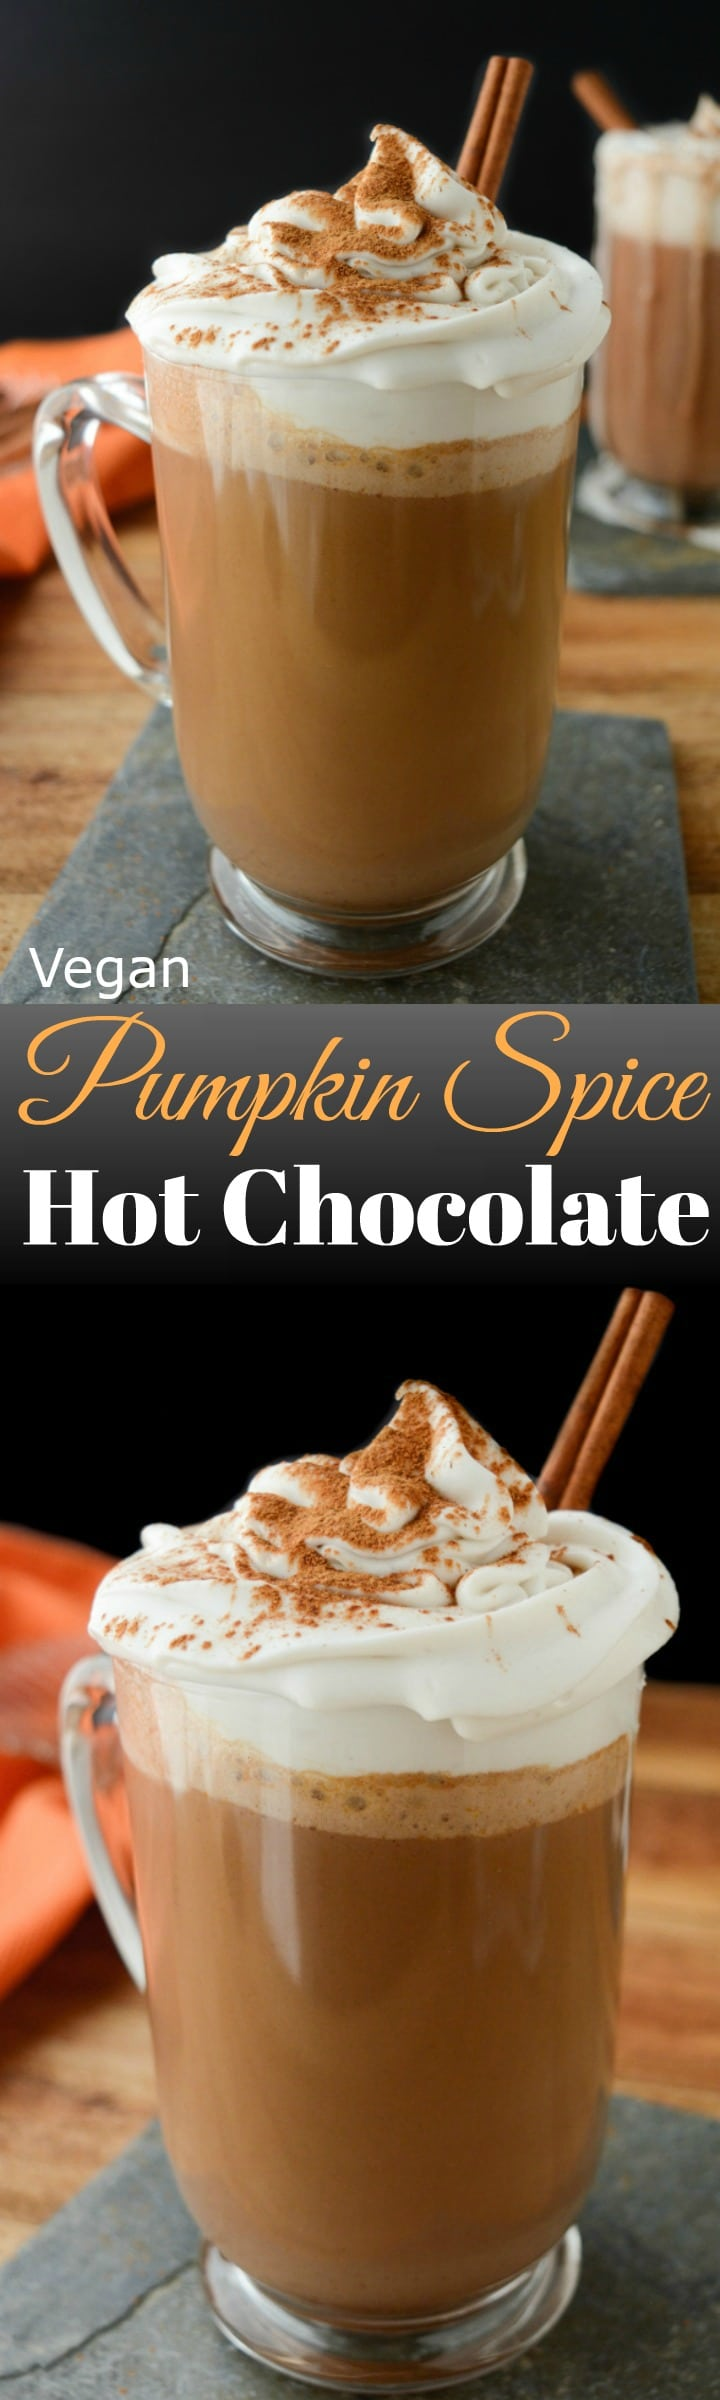 Cozy up this season with Vegan Pumpkin Spice Hot Chocolate!  It's made with real pumpkin puree!  Make a batch for the family or bring it in the slow cooker to your next holiday gathering. dairy-free